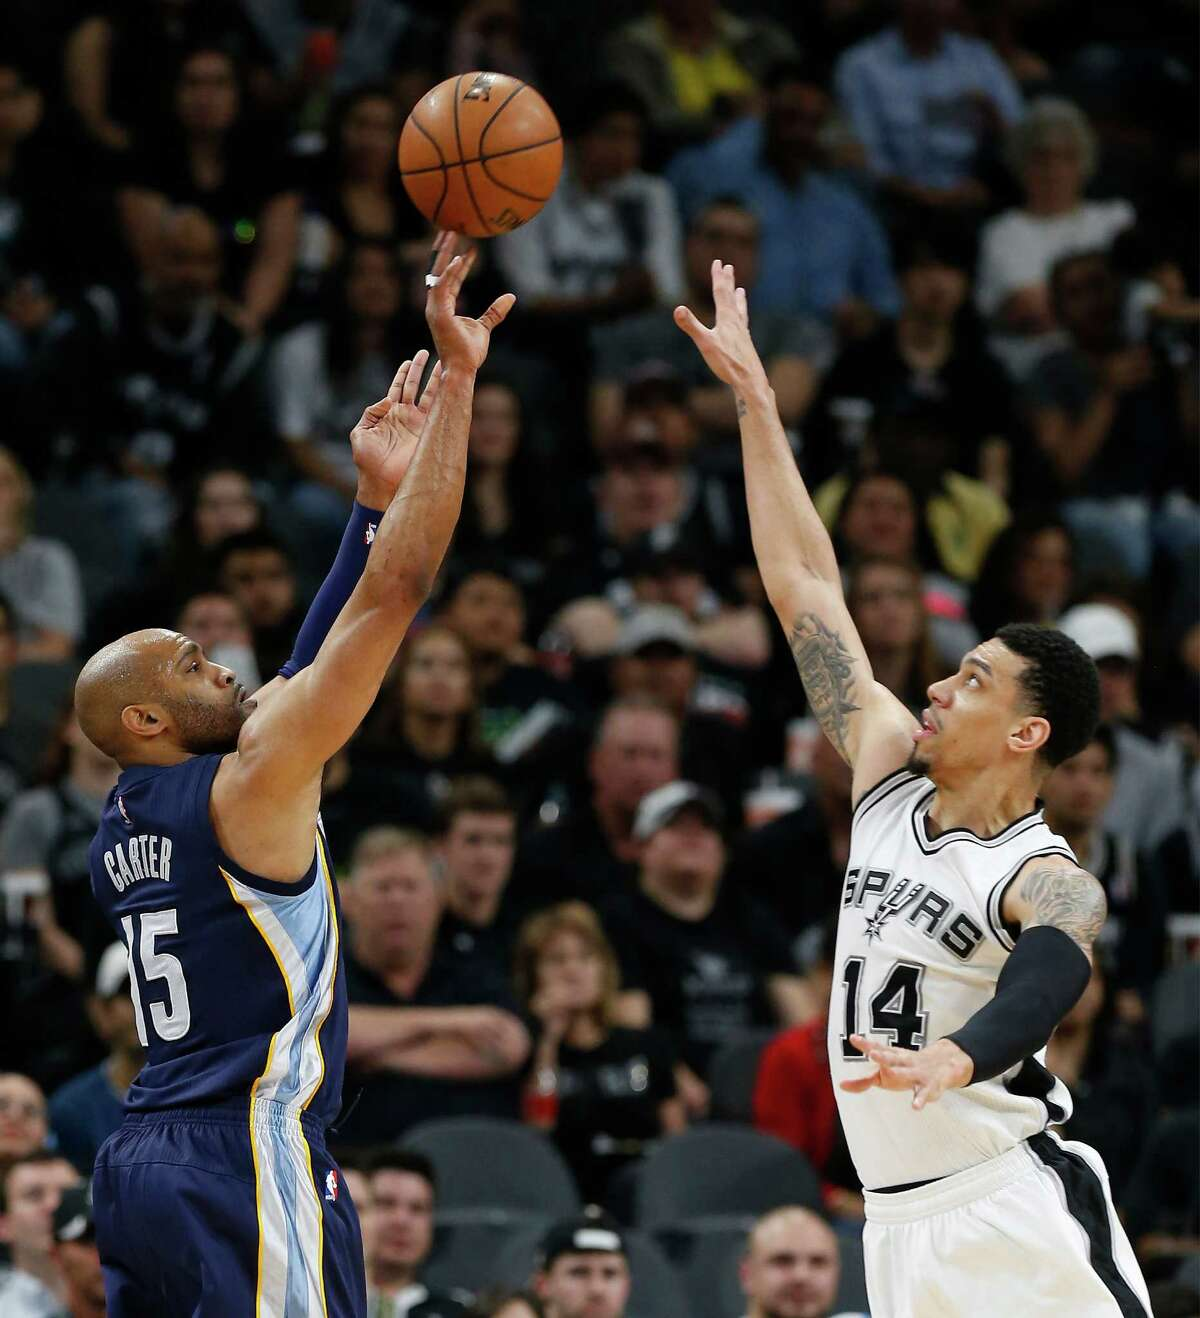 Spurs' Danny Green (14) attempts to block a shot by Memphis Grizzlies' Vince Carter (15) at the AT&T Center in Game 2 of the first round of Western Conference playoffs on Tuesday, Apr. 19, 2016. (Kin Man Hui/San Antonio Express-News)